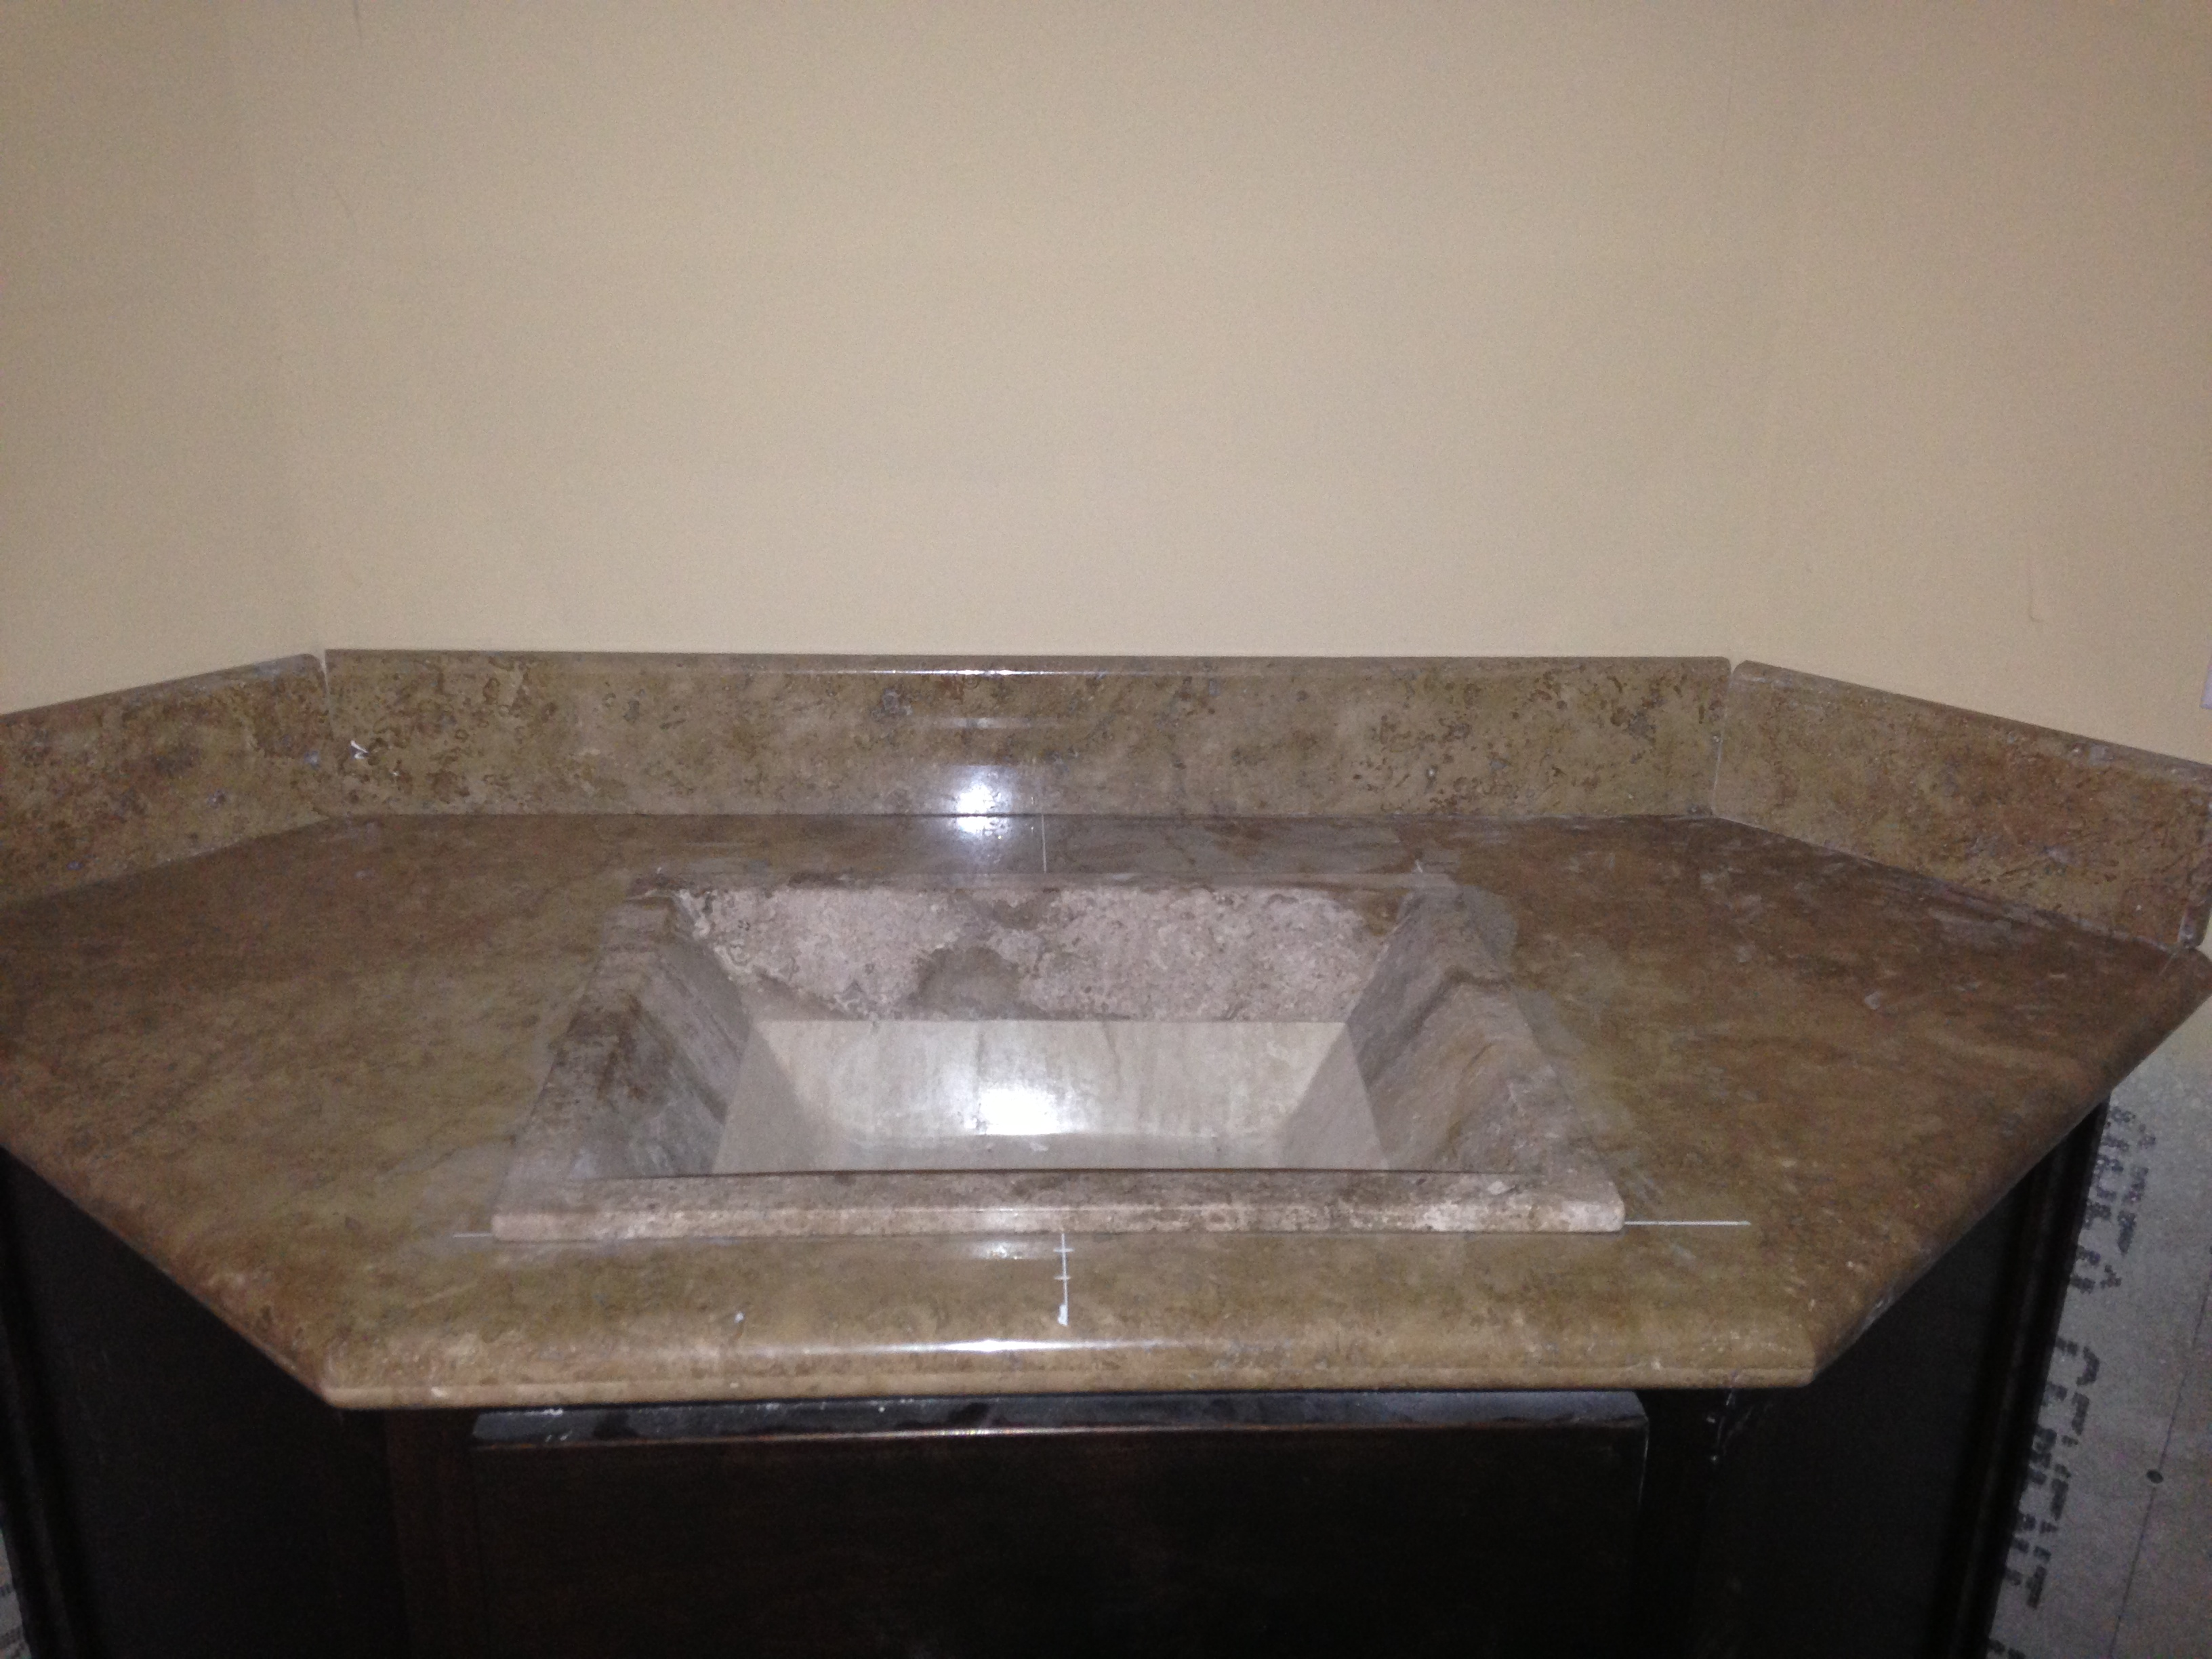 Travertine Undermount Stone Sink